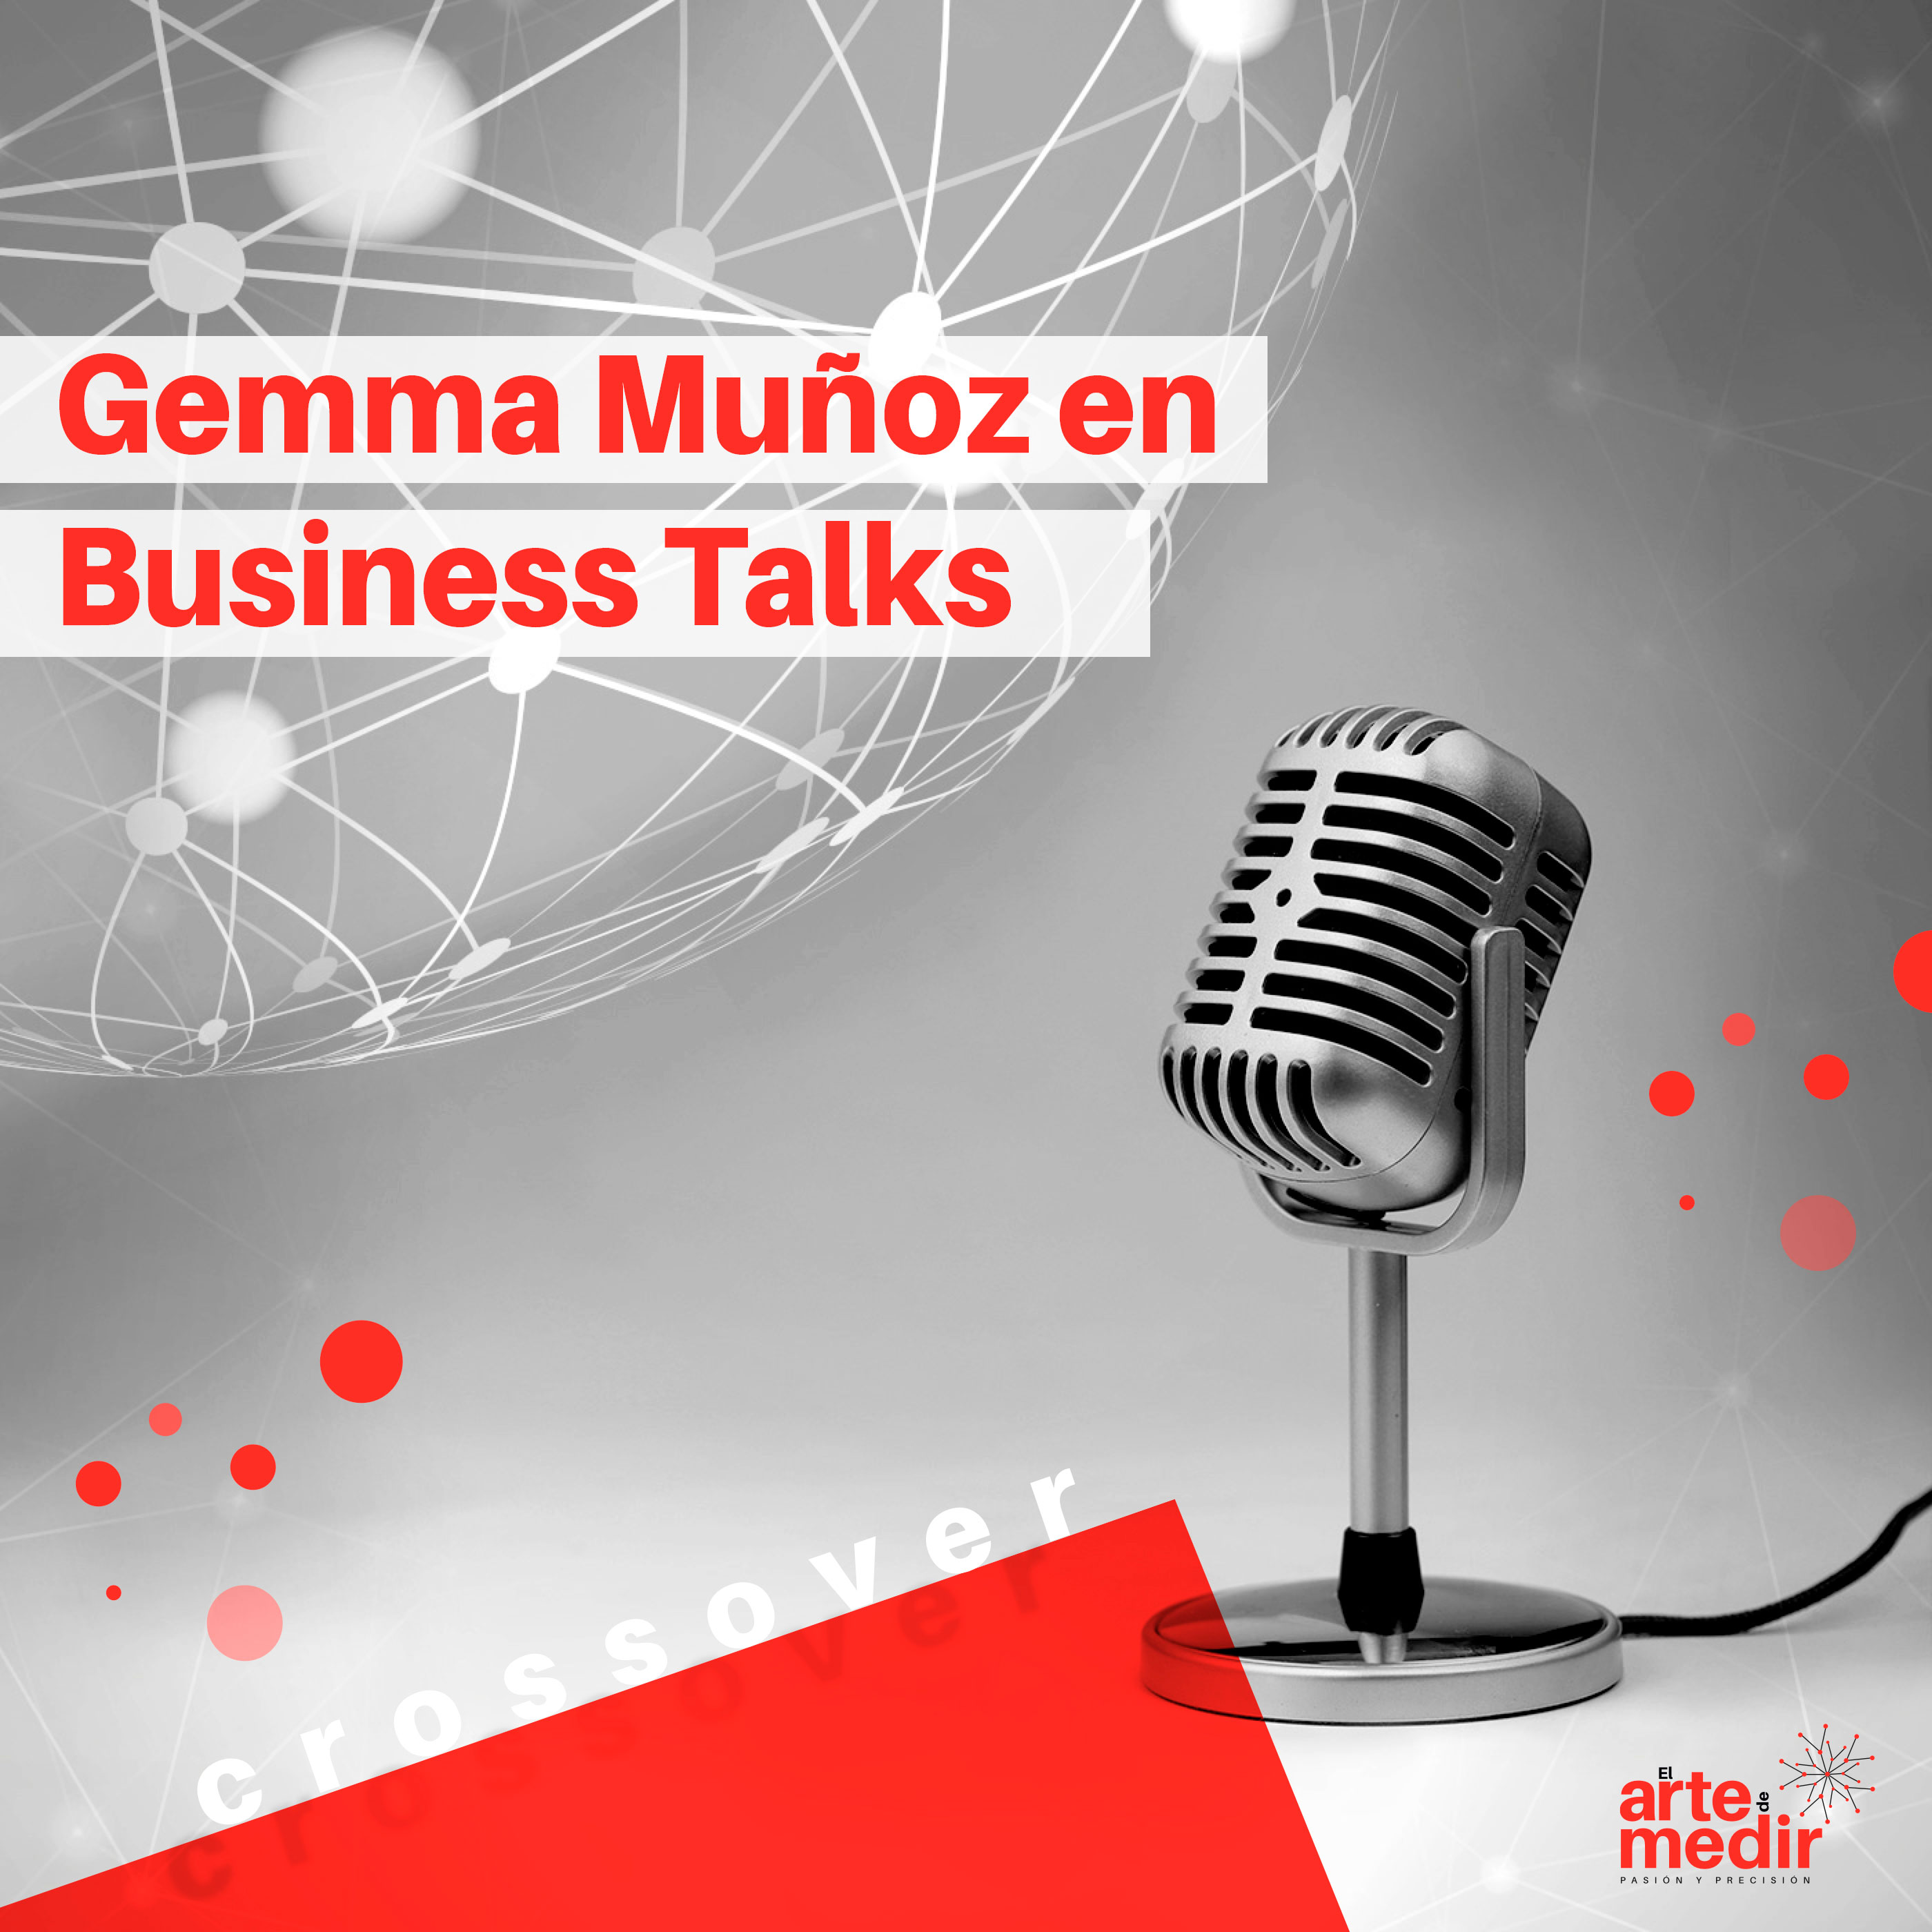 Business talks 2018